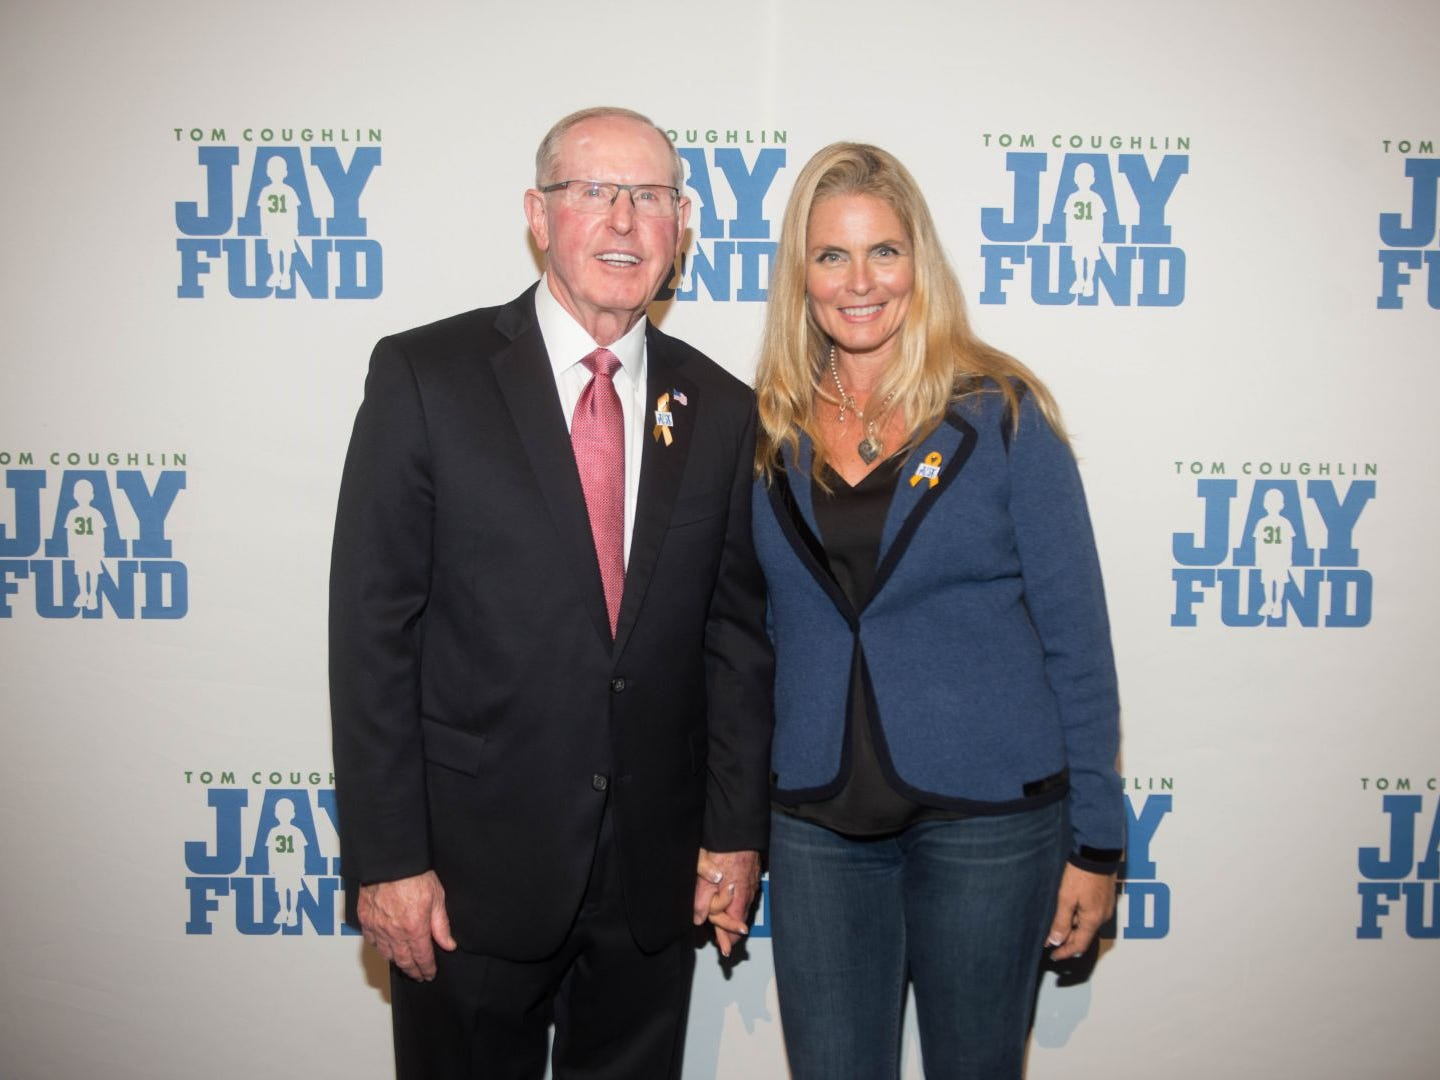 Tom Coughlin and Kim Alexis. The 14th annual Jay Fund Champions for Children Gala was held at Cipriani 42nd Street. 09/21/2018